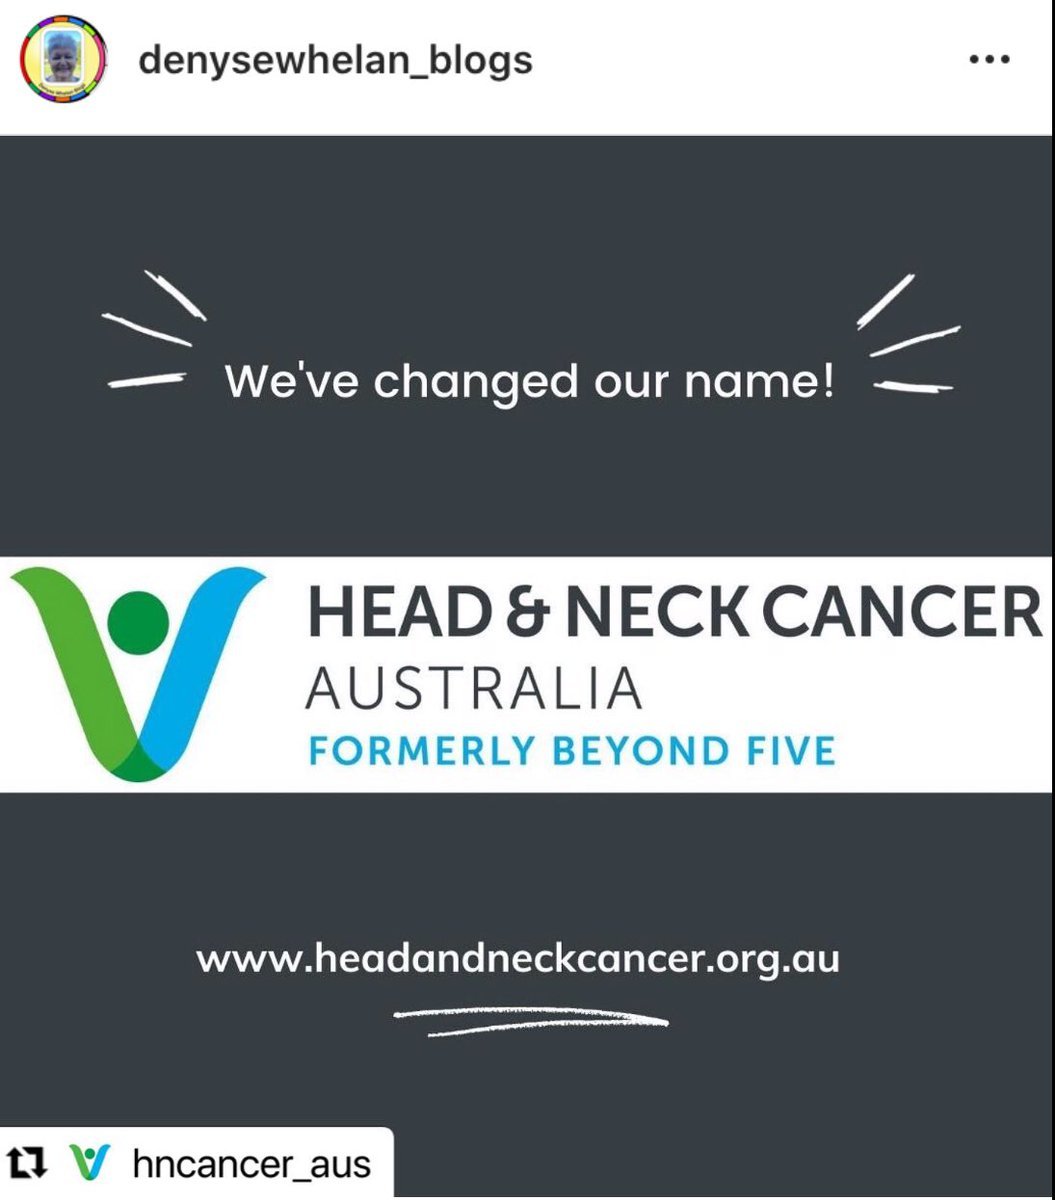 Congratulations to former #beyondfive on this name change to be an easier search for #headandneckcancer #patients #professionals #carers check it out & do follow @hncancer_aus for up to date #HNC information https://t.co/L54AnO1iqo